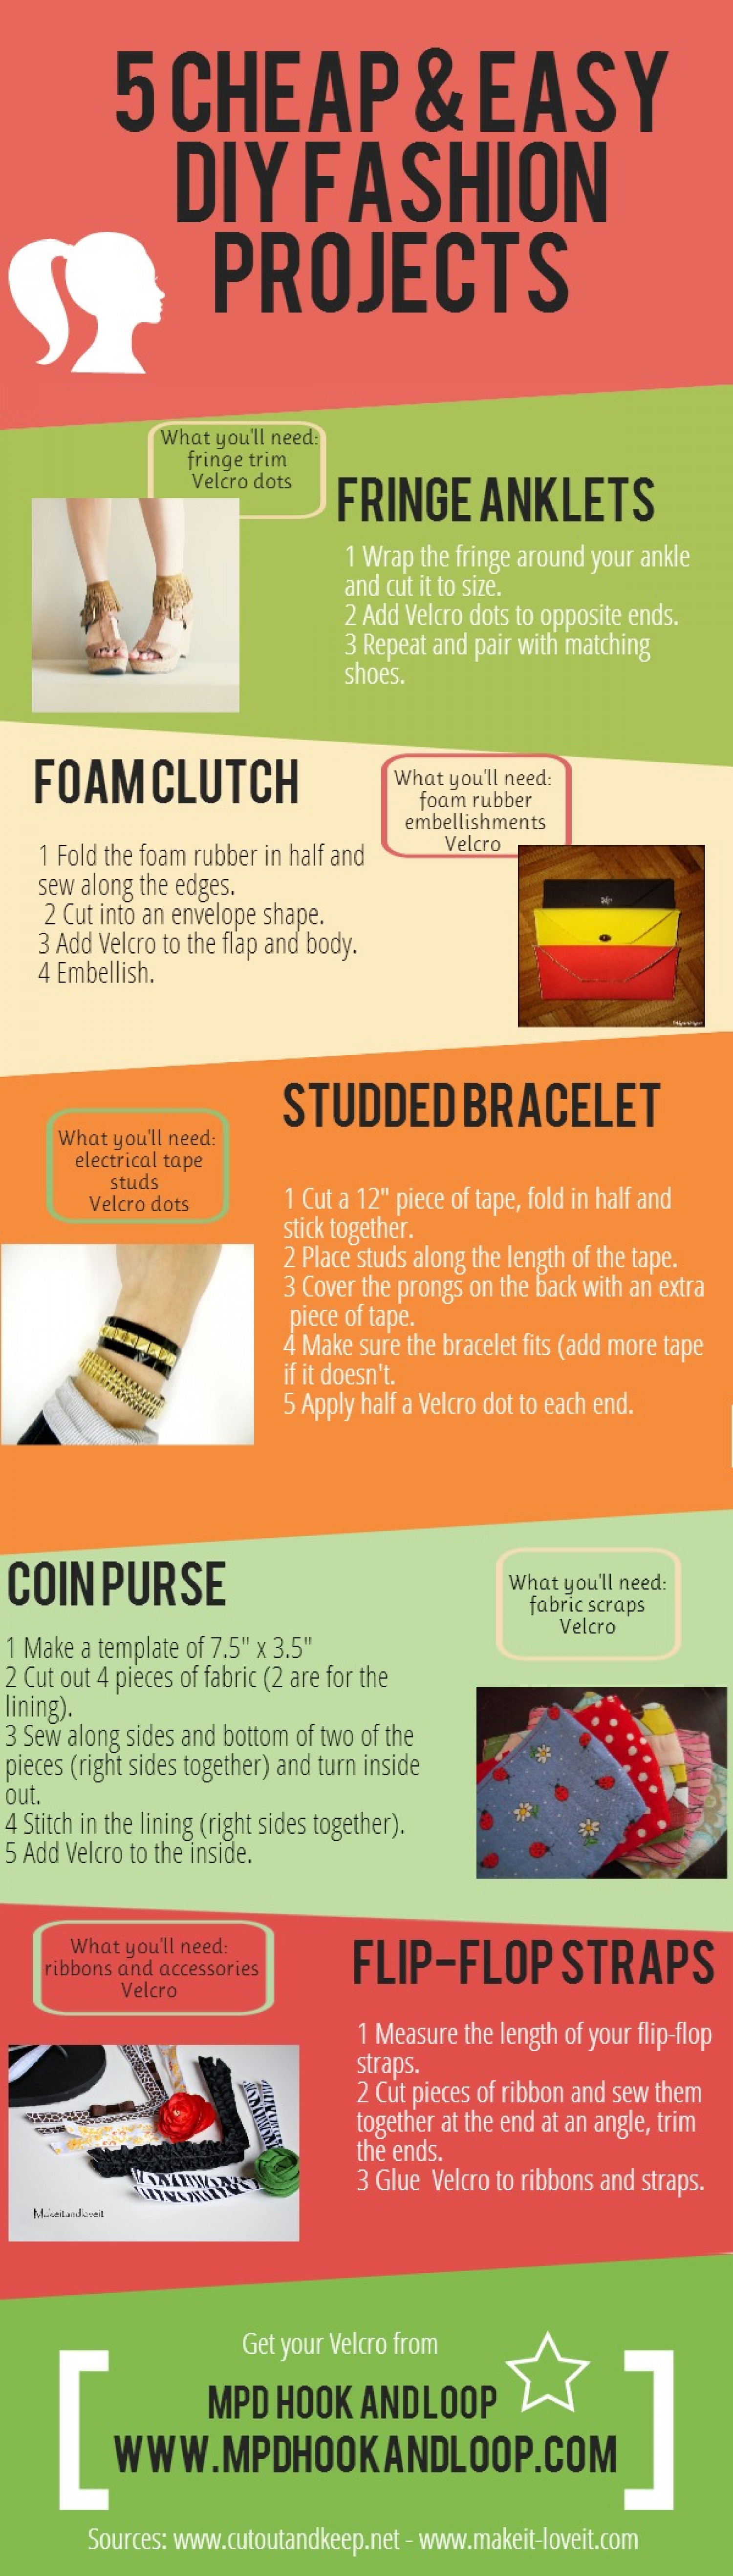 5 Cheap & Easy DIY Fashion Projects  Infographic